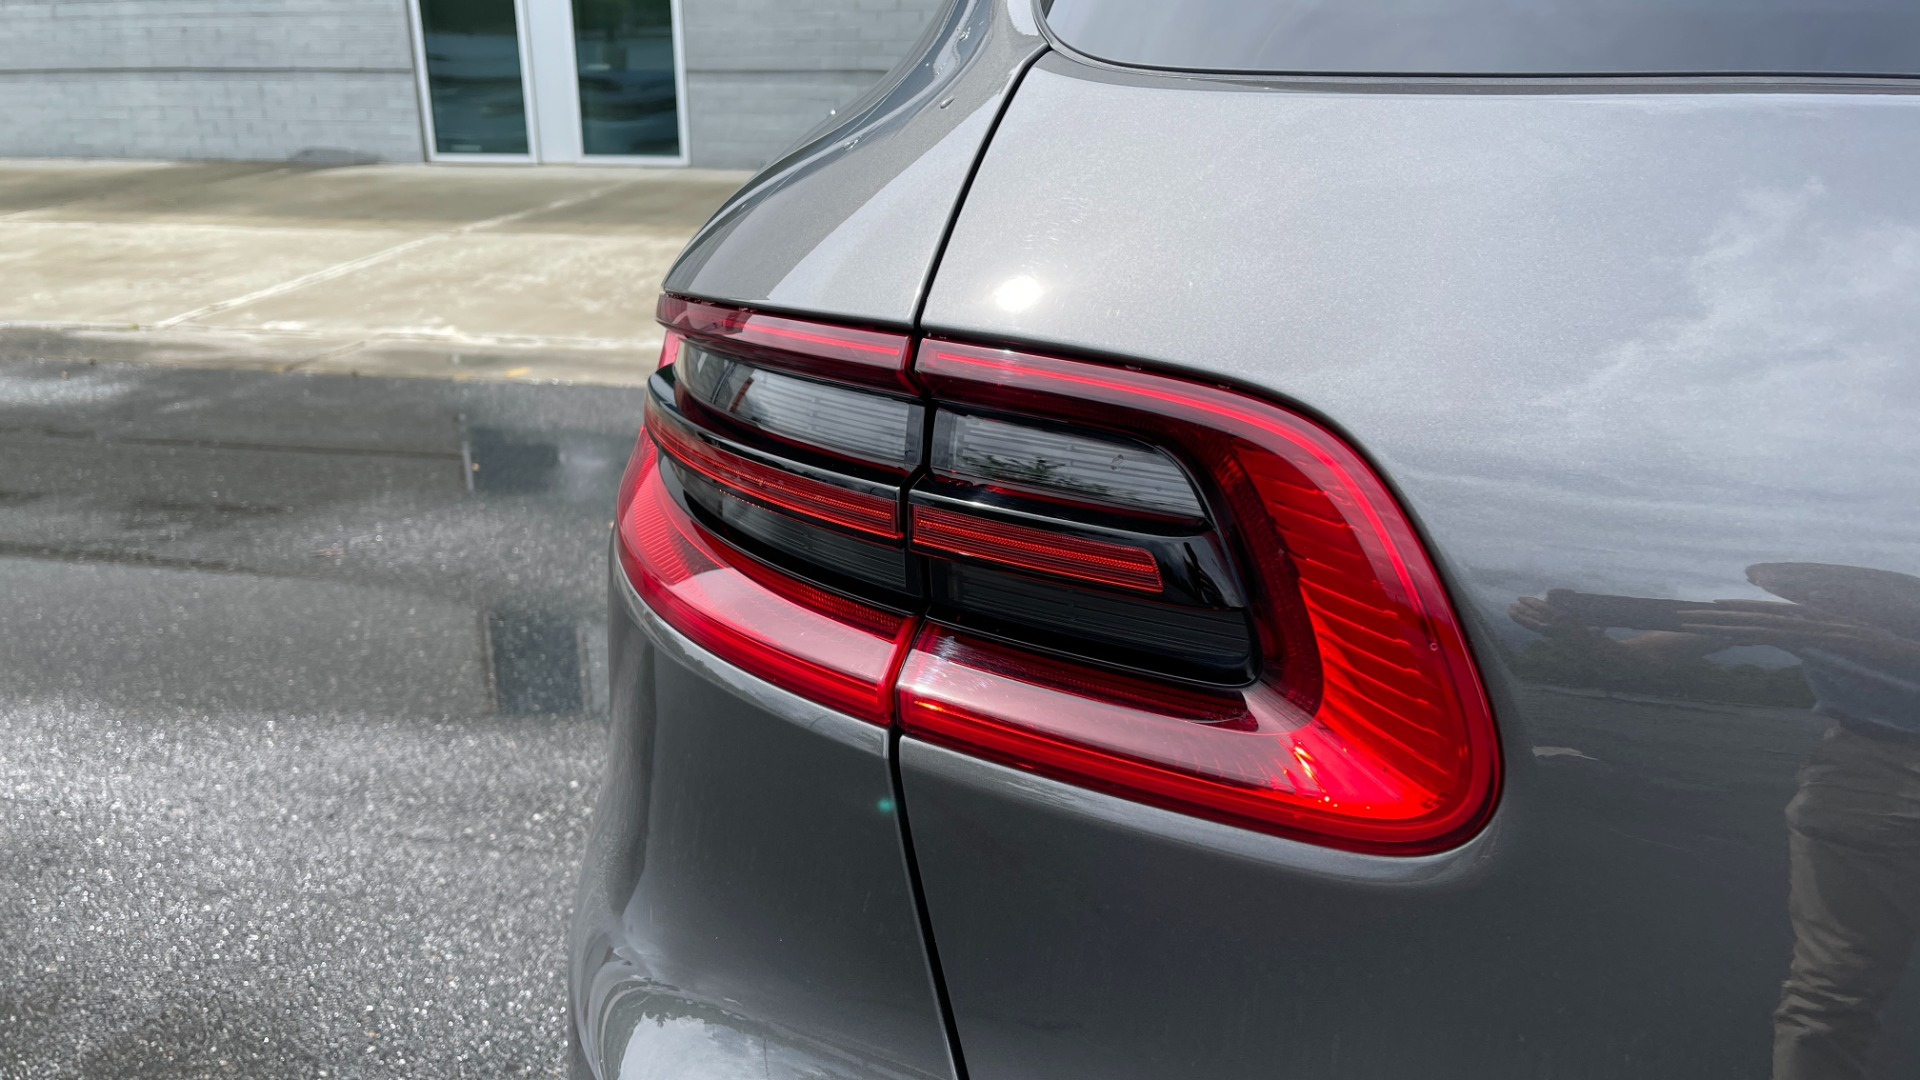 Used 2016 Porsche MACAN S PREMIUM PLUS / AWD / NAV / BOSE / SUNROOF / LCA / PARK ASST / INFOTAINMEN for sale $45,256 at Formula Imports in Charlotte NC 28227 23